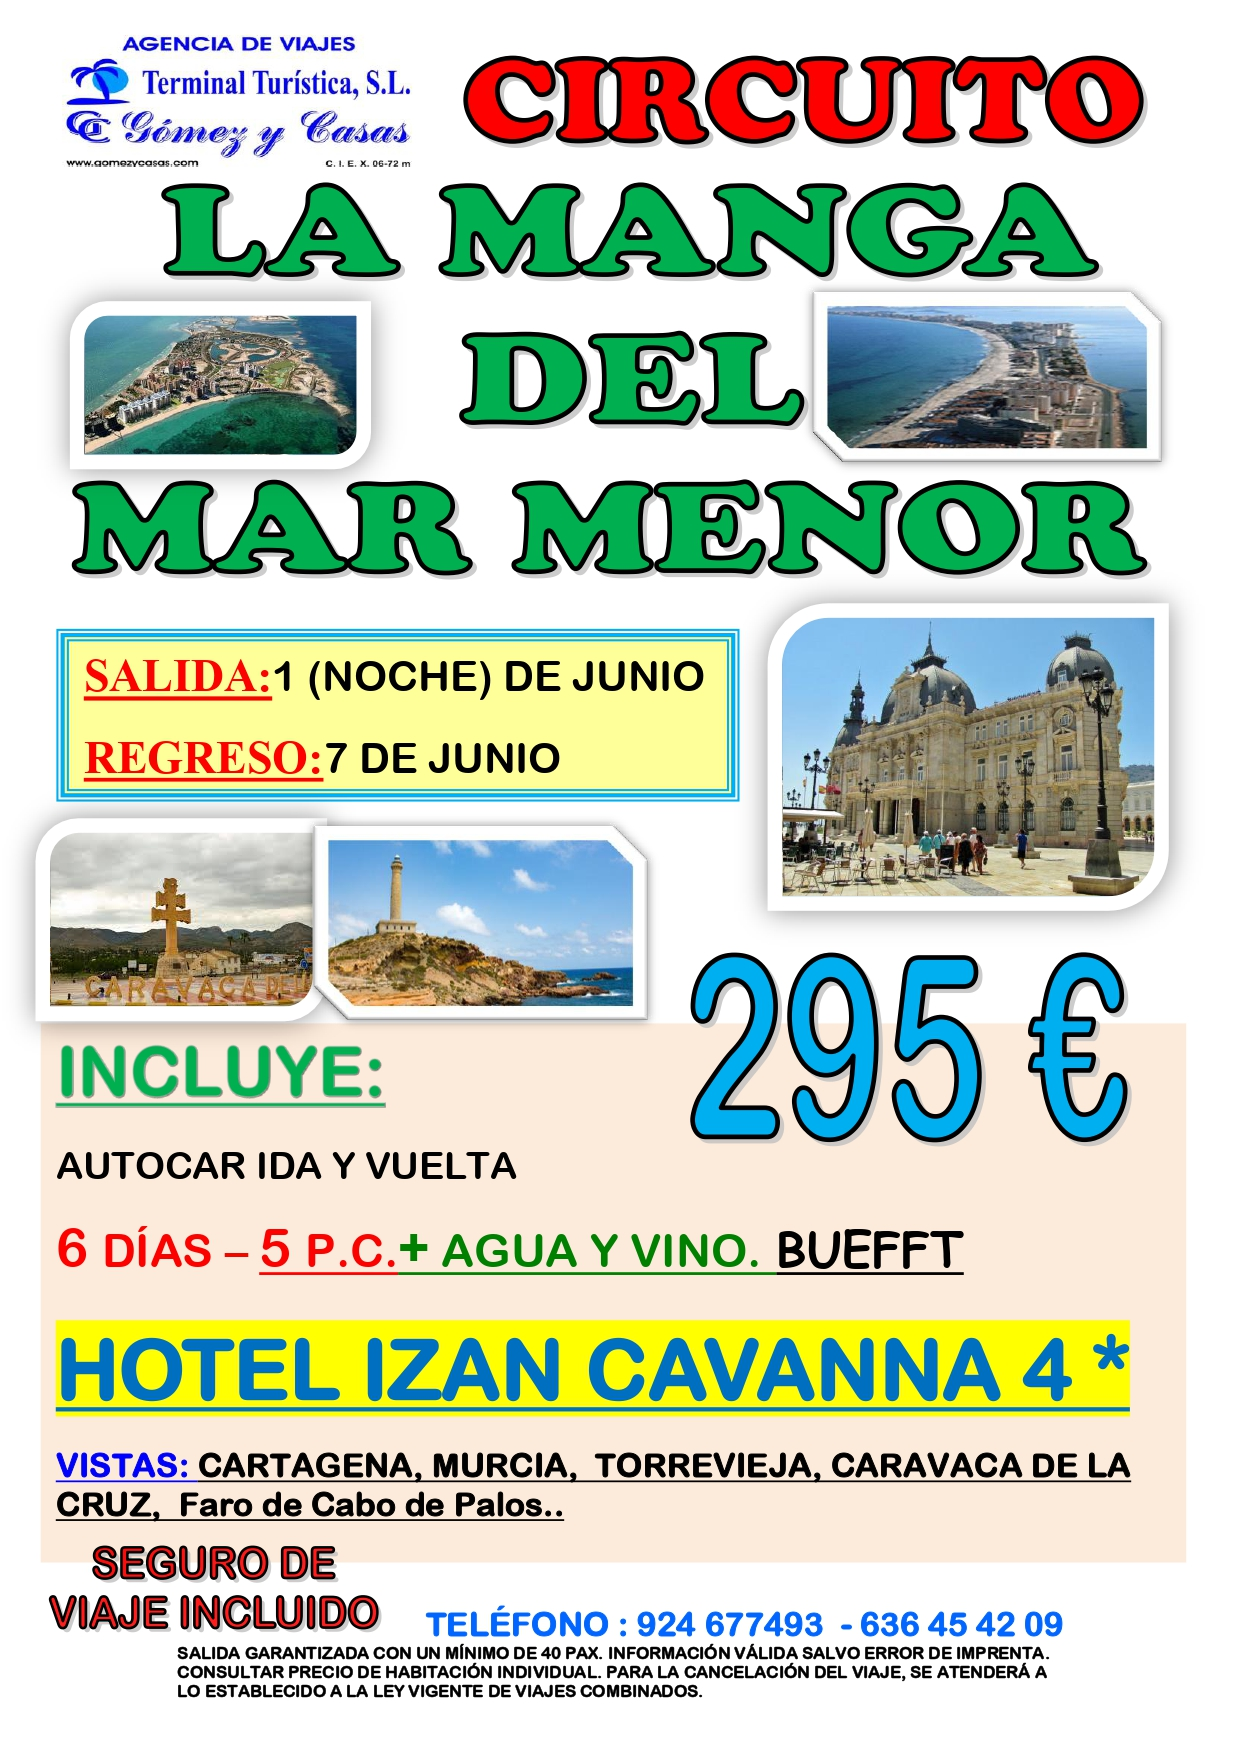 La Manga del Mar Menor. ALTERNATIVA AL IMSERSO. Del 1 al 7 de Junio